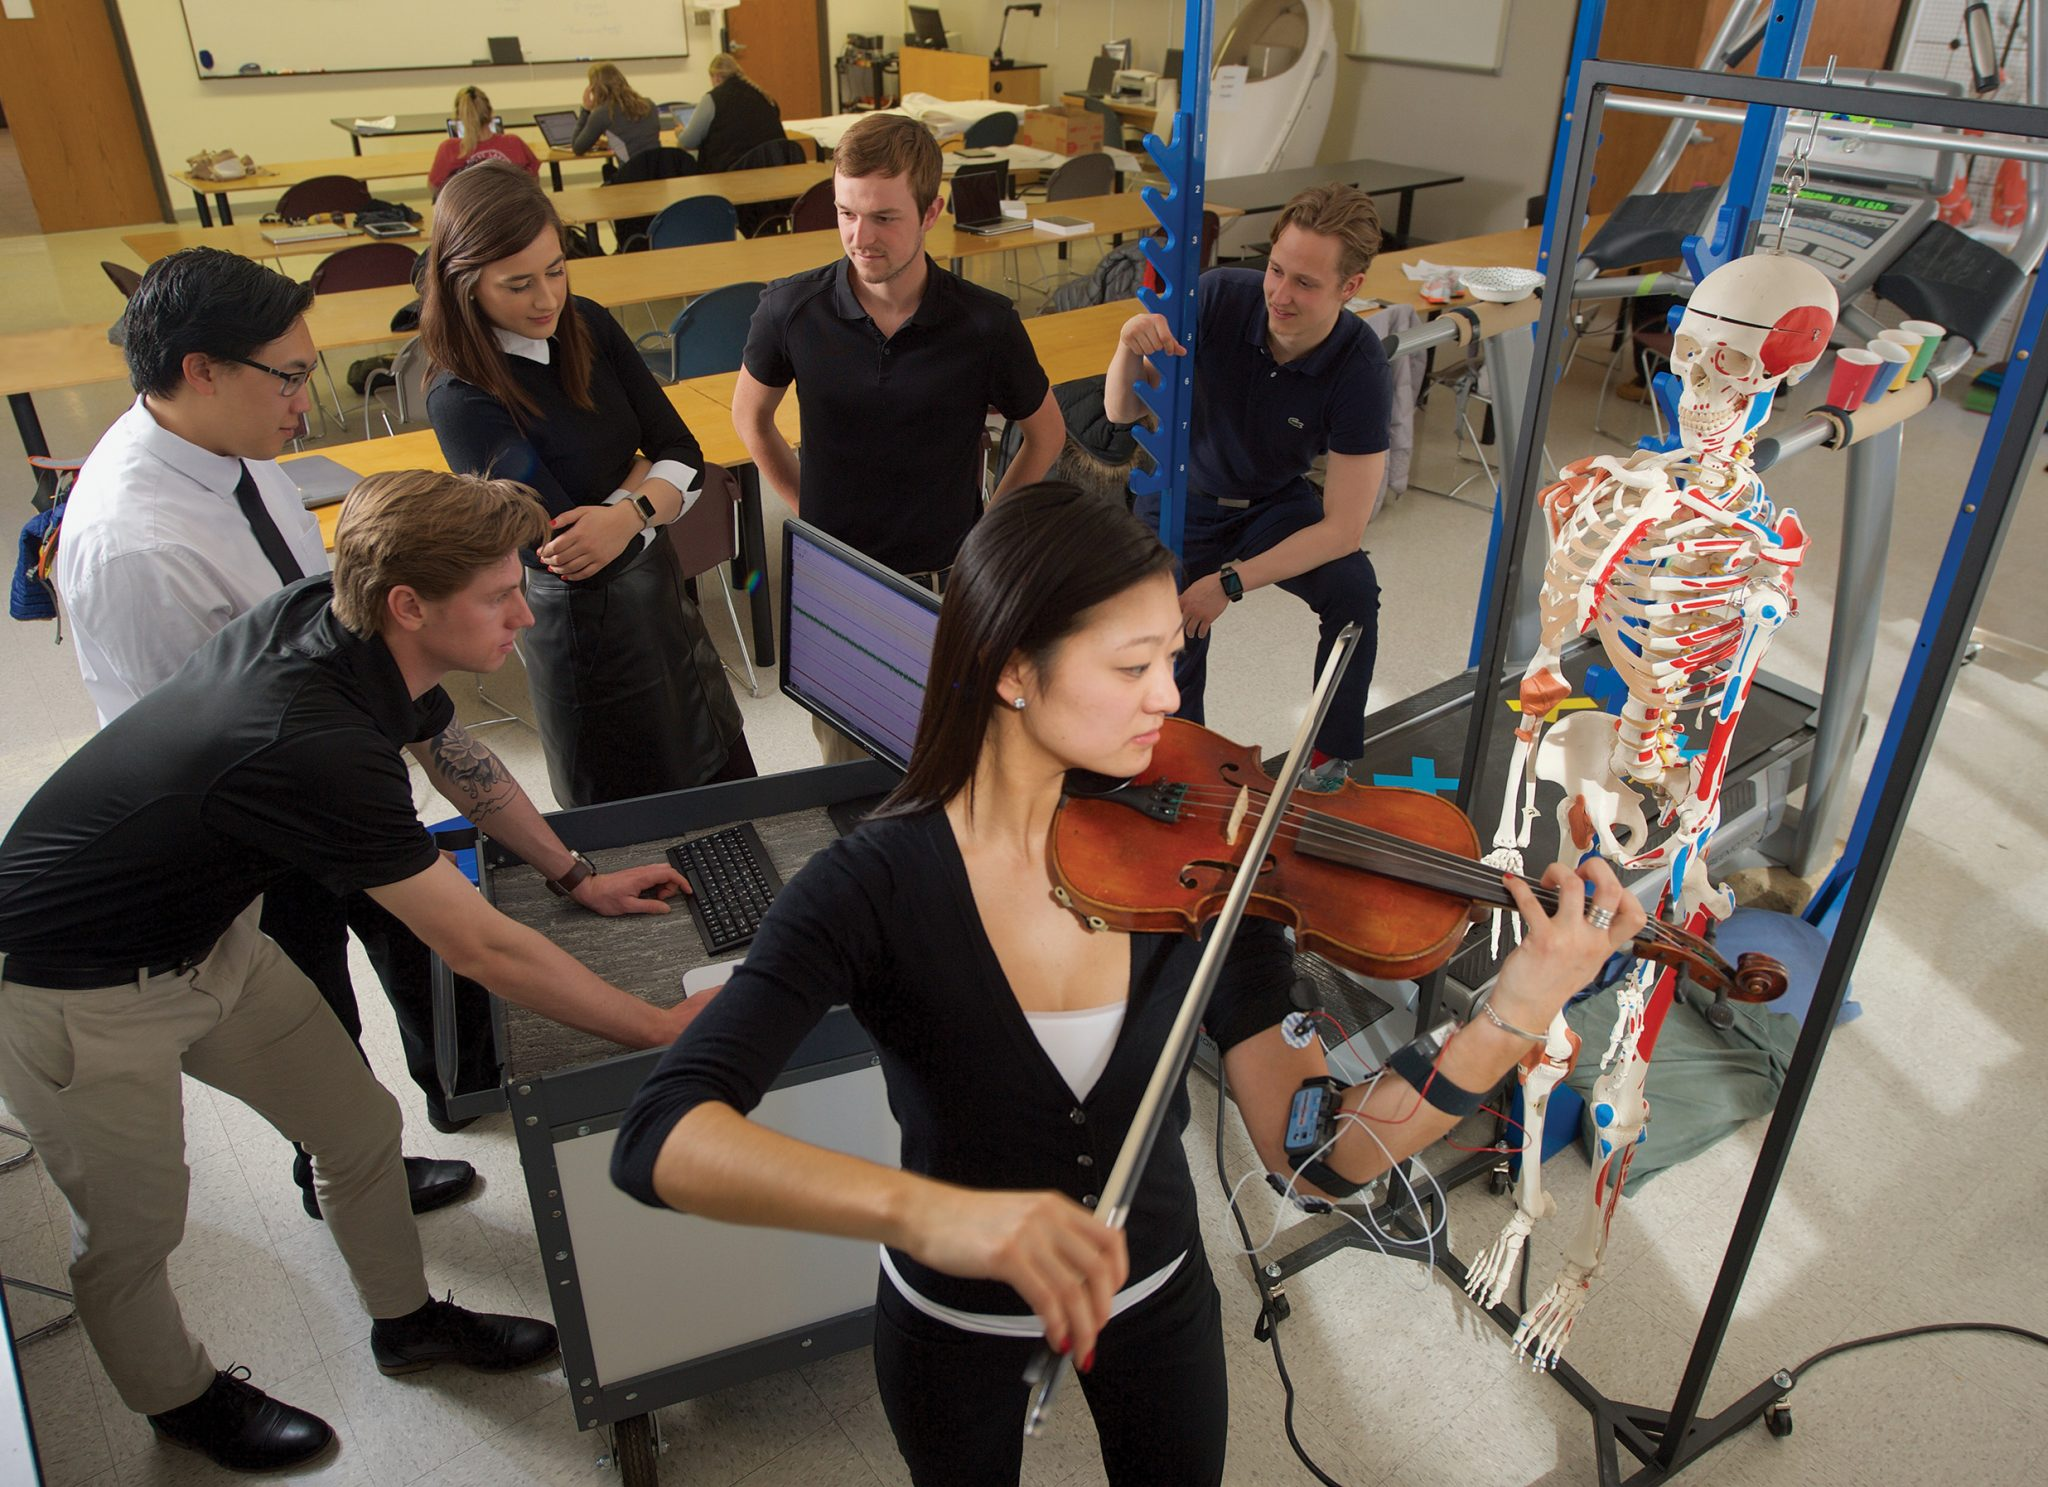 Woman playing violin in front of students looking at a computer monitor.